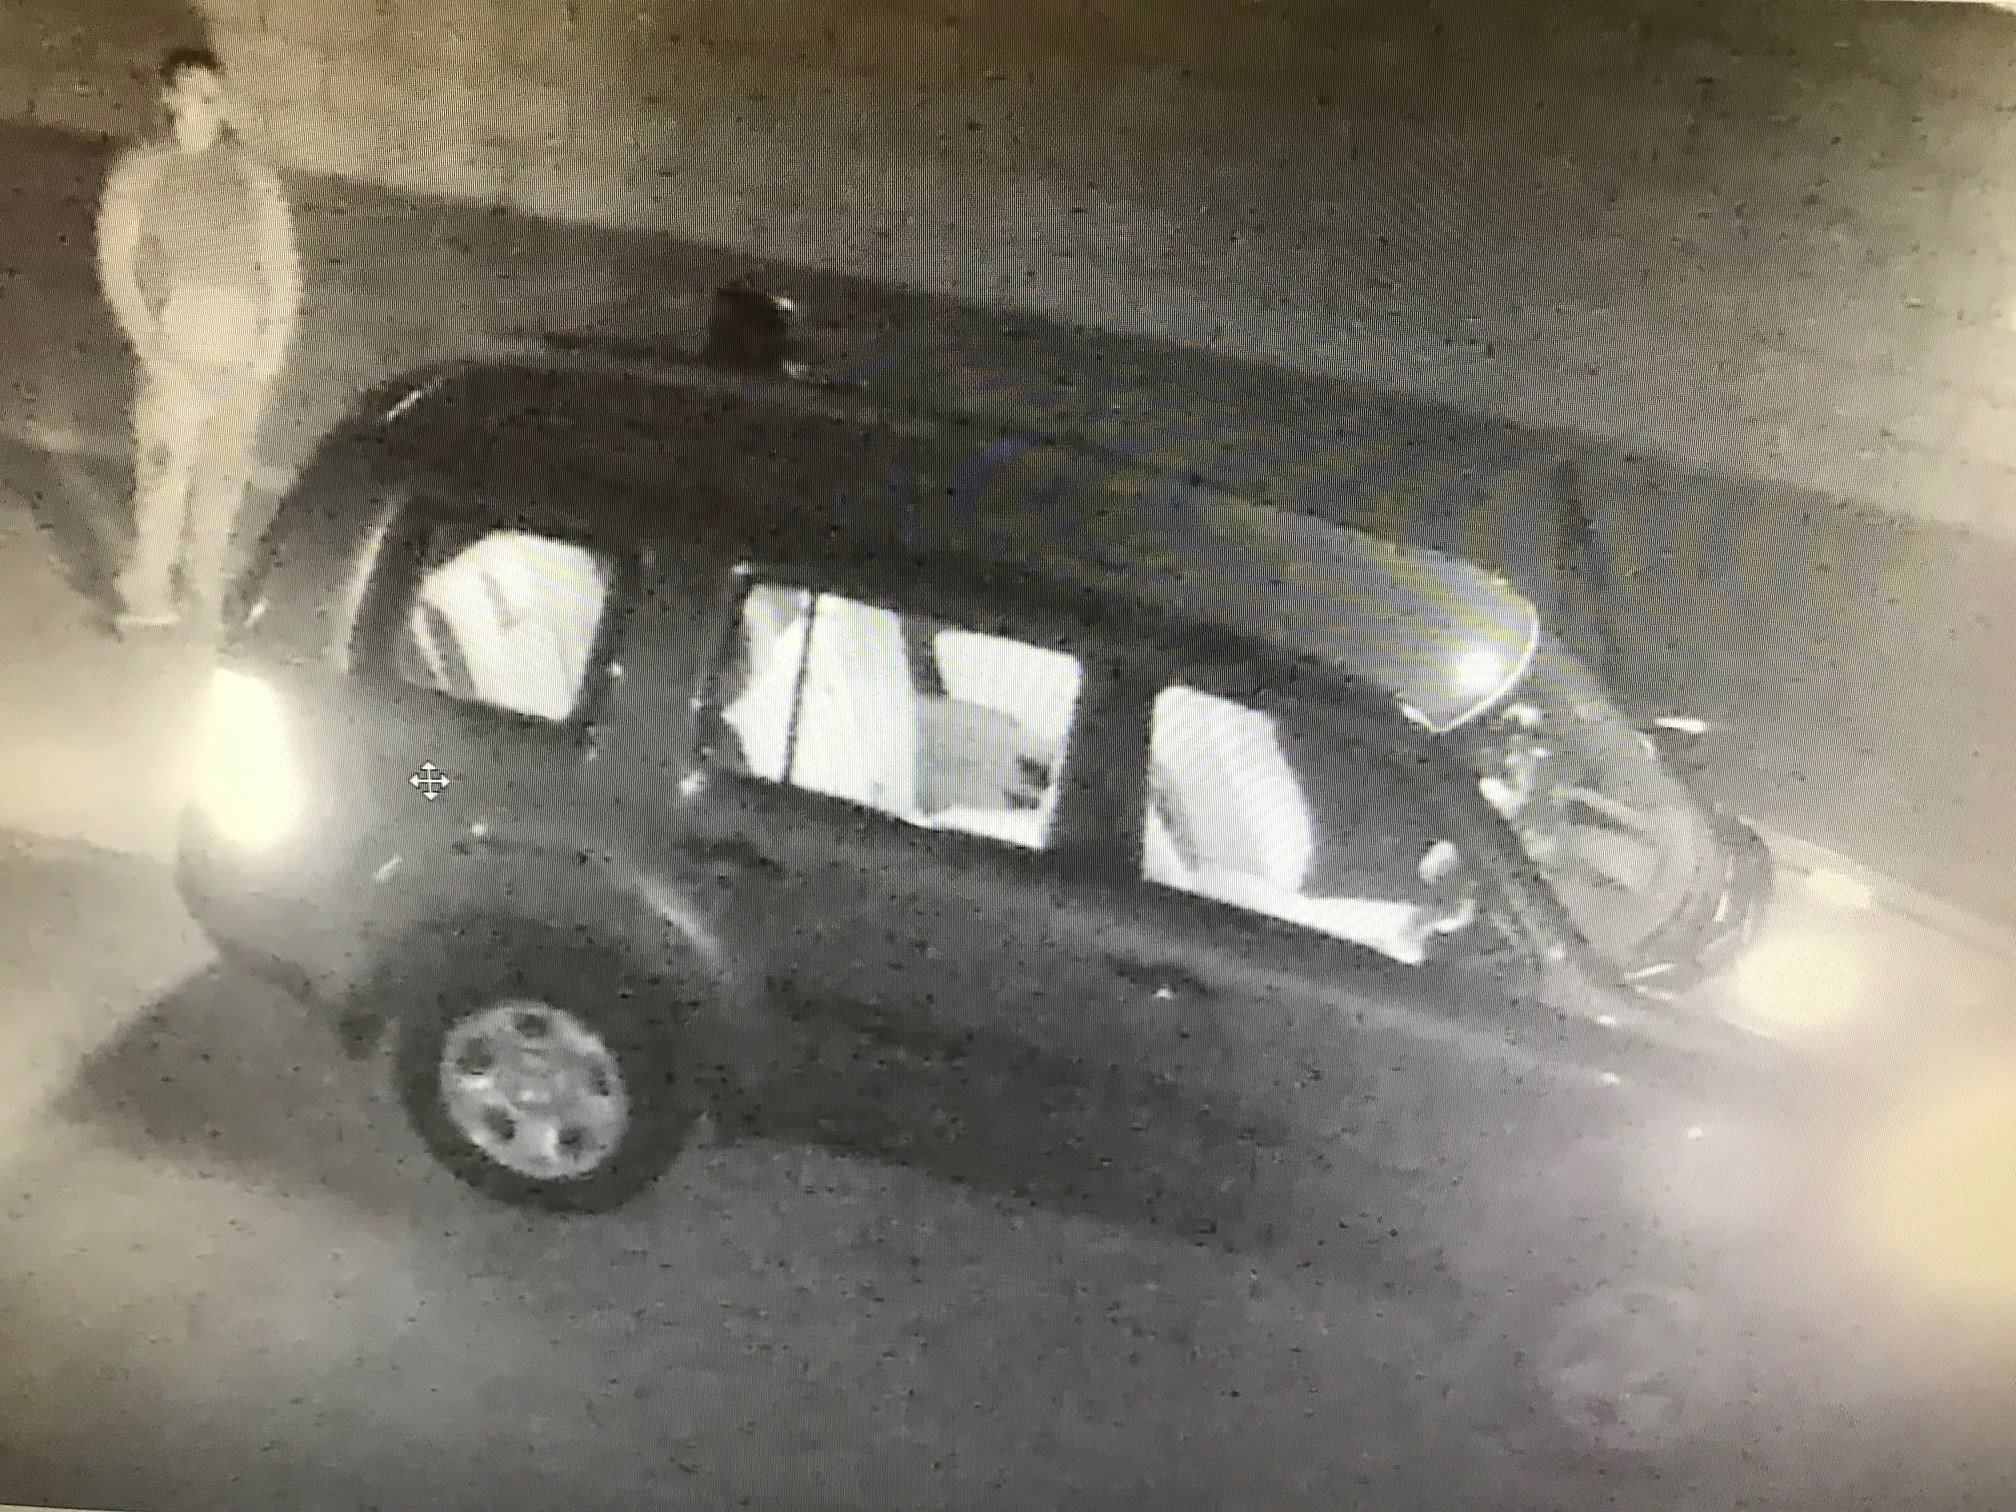 Police looking for suspects in construction site theft on Oct. 27, 2017.